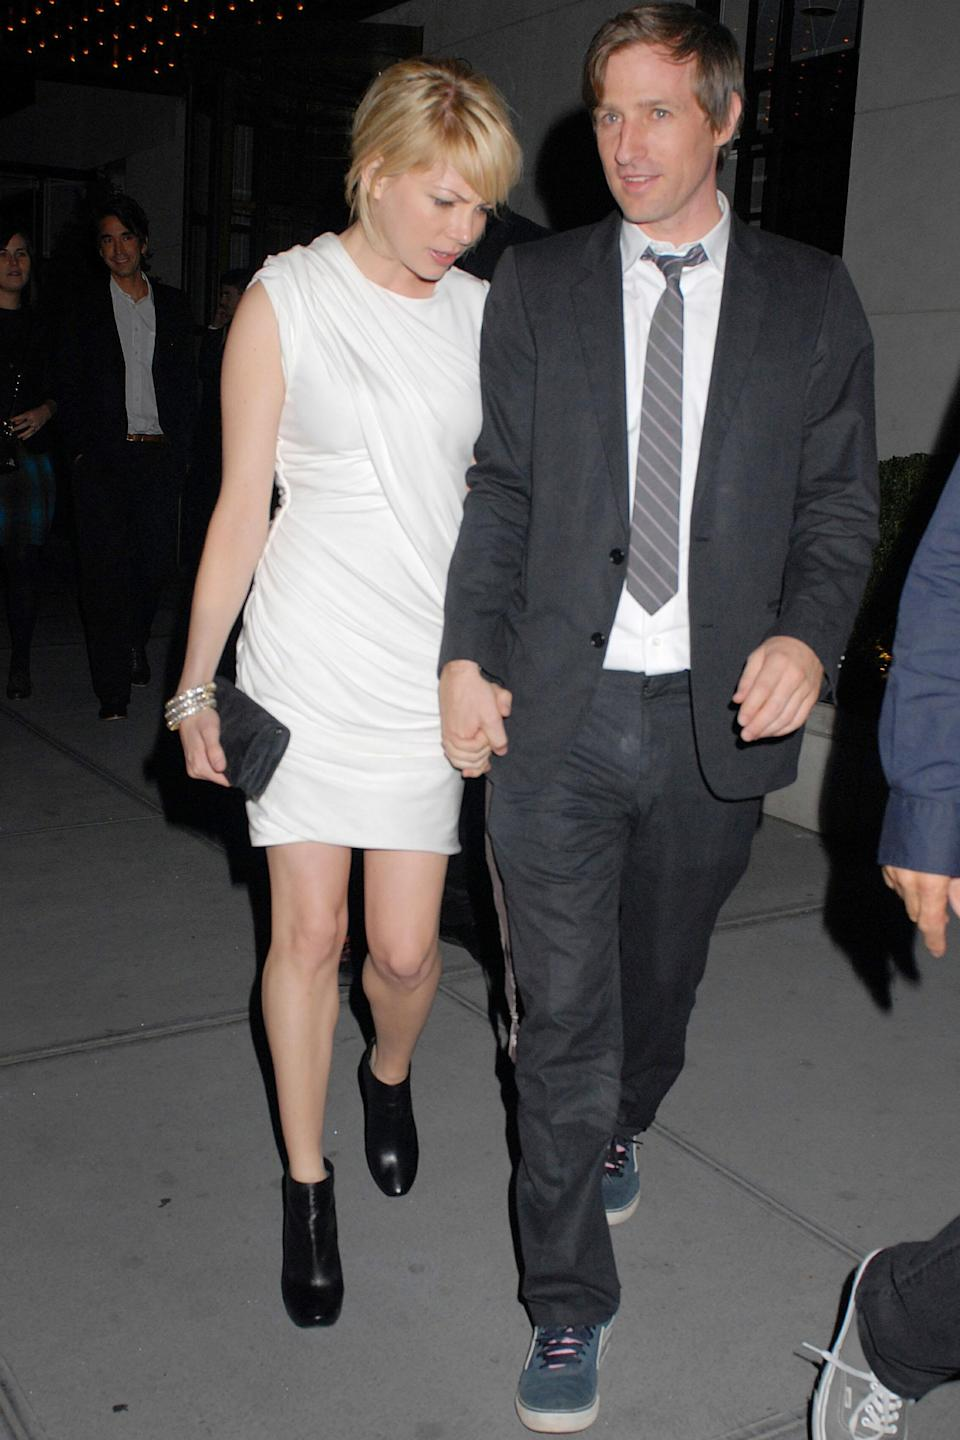 Michelle Williams and Spike Jonze at Gramercy Park Hotel in New York City on Oct. 15, 2008. (Photo: Justin Campbell/BuzzFoto/FilmMagic)